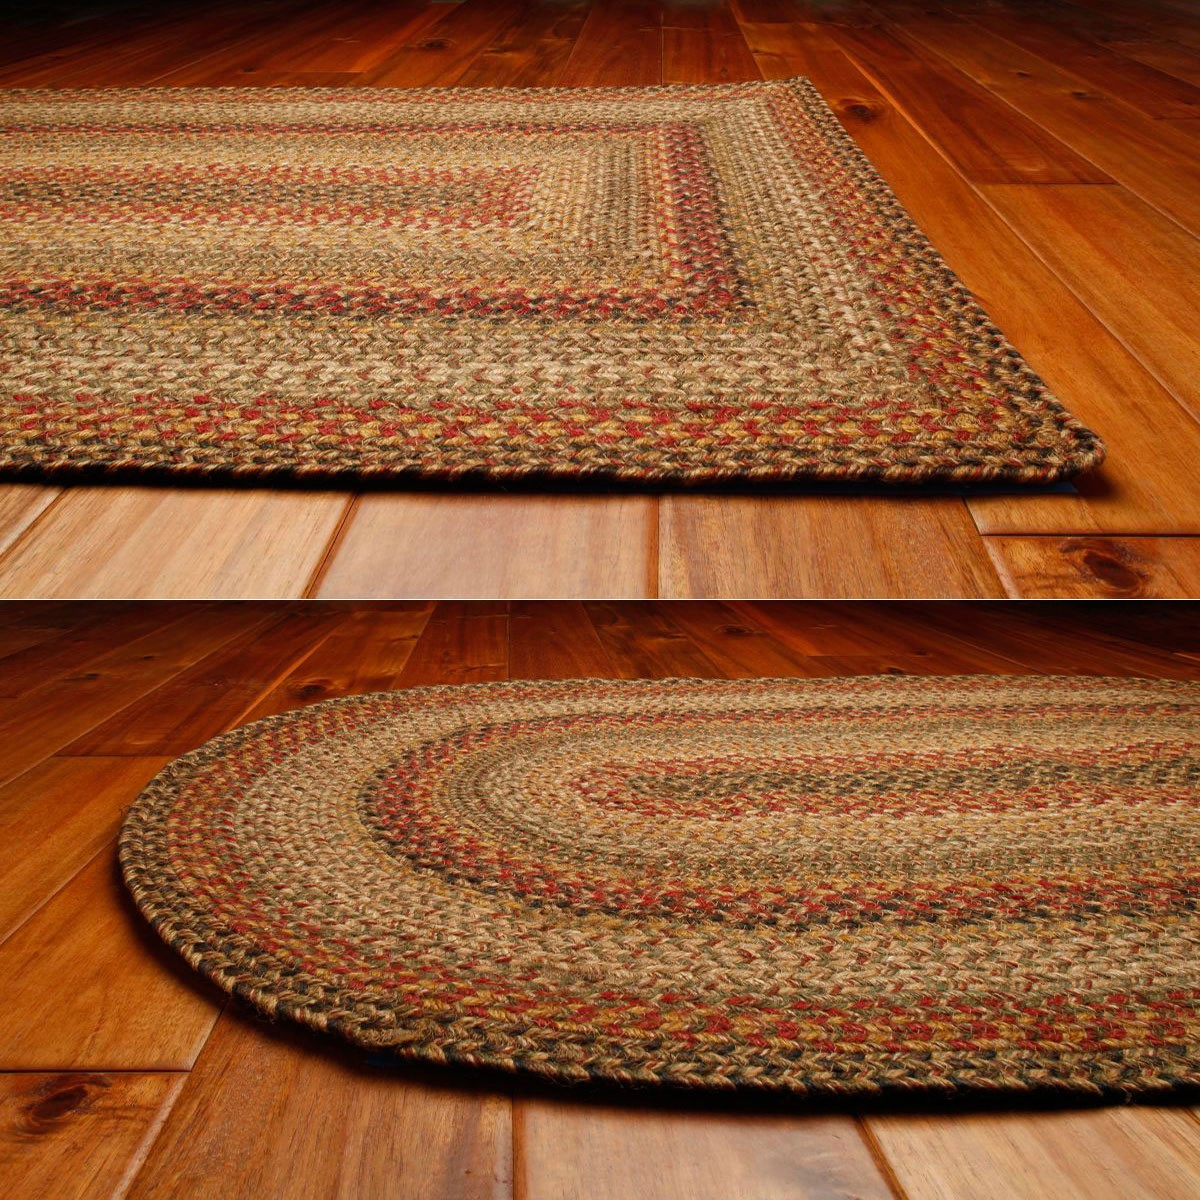 Kingston Jute Braided Rugs